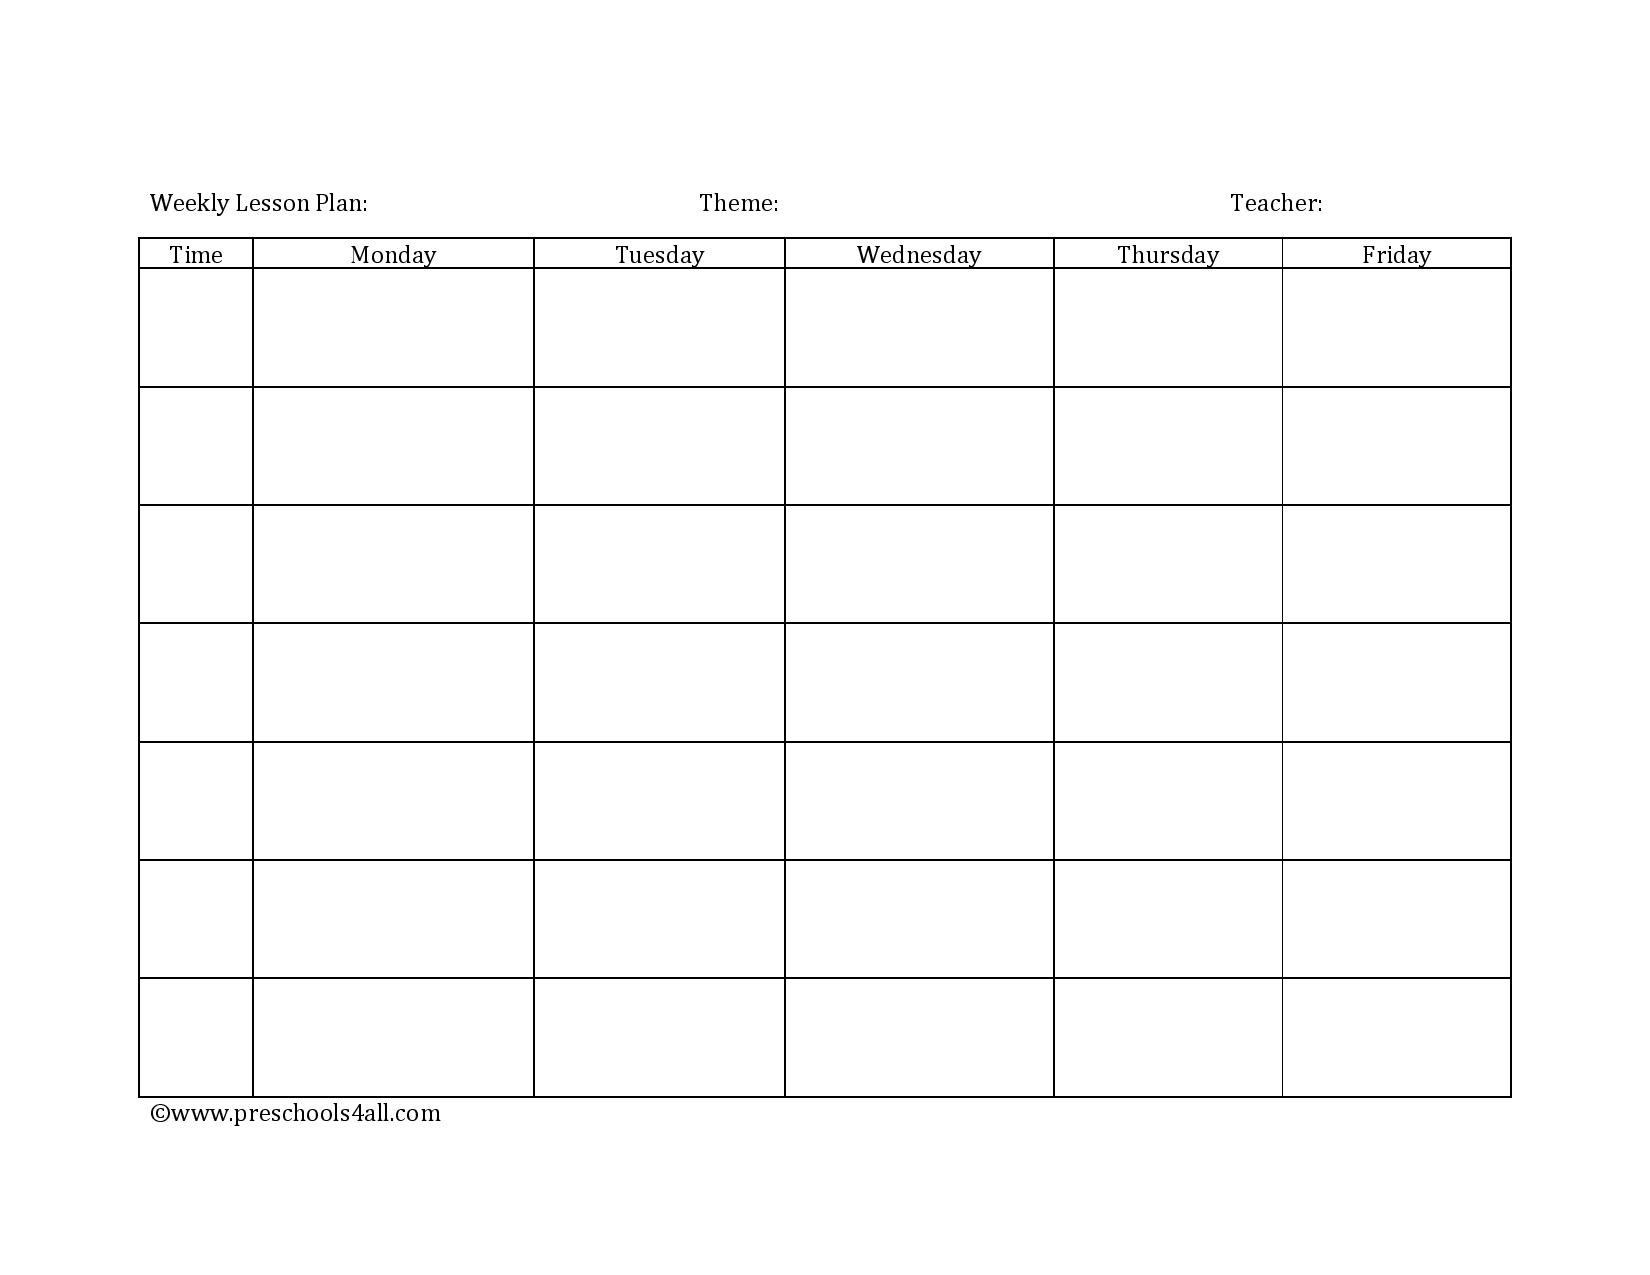 Preschool Lesson Plan Template - Lesson Plan Book Template-Weekly Lesson Plan Blank Template